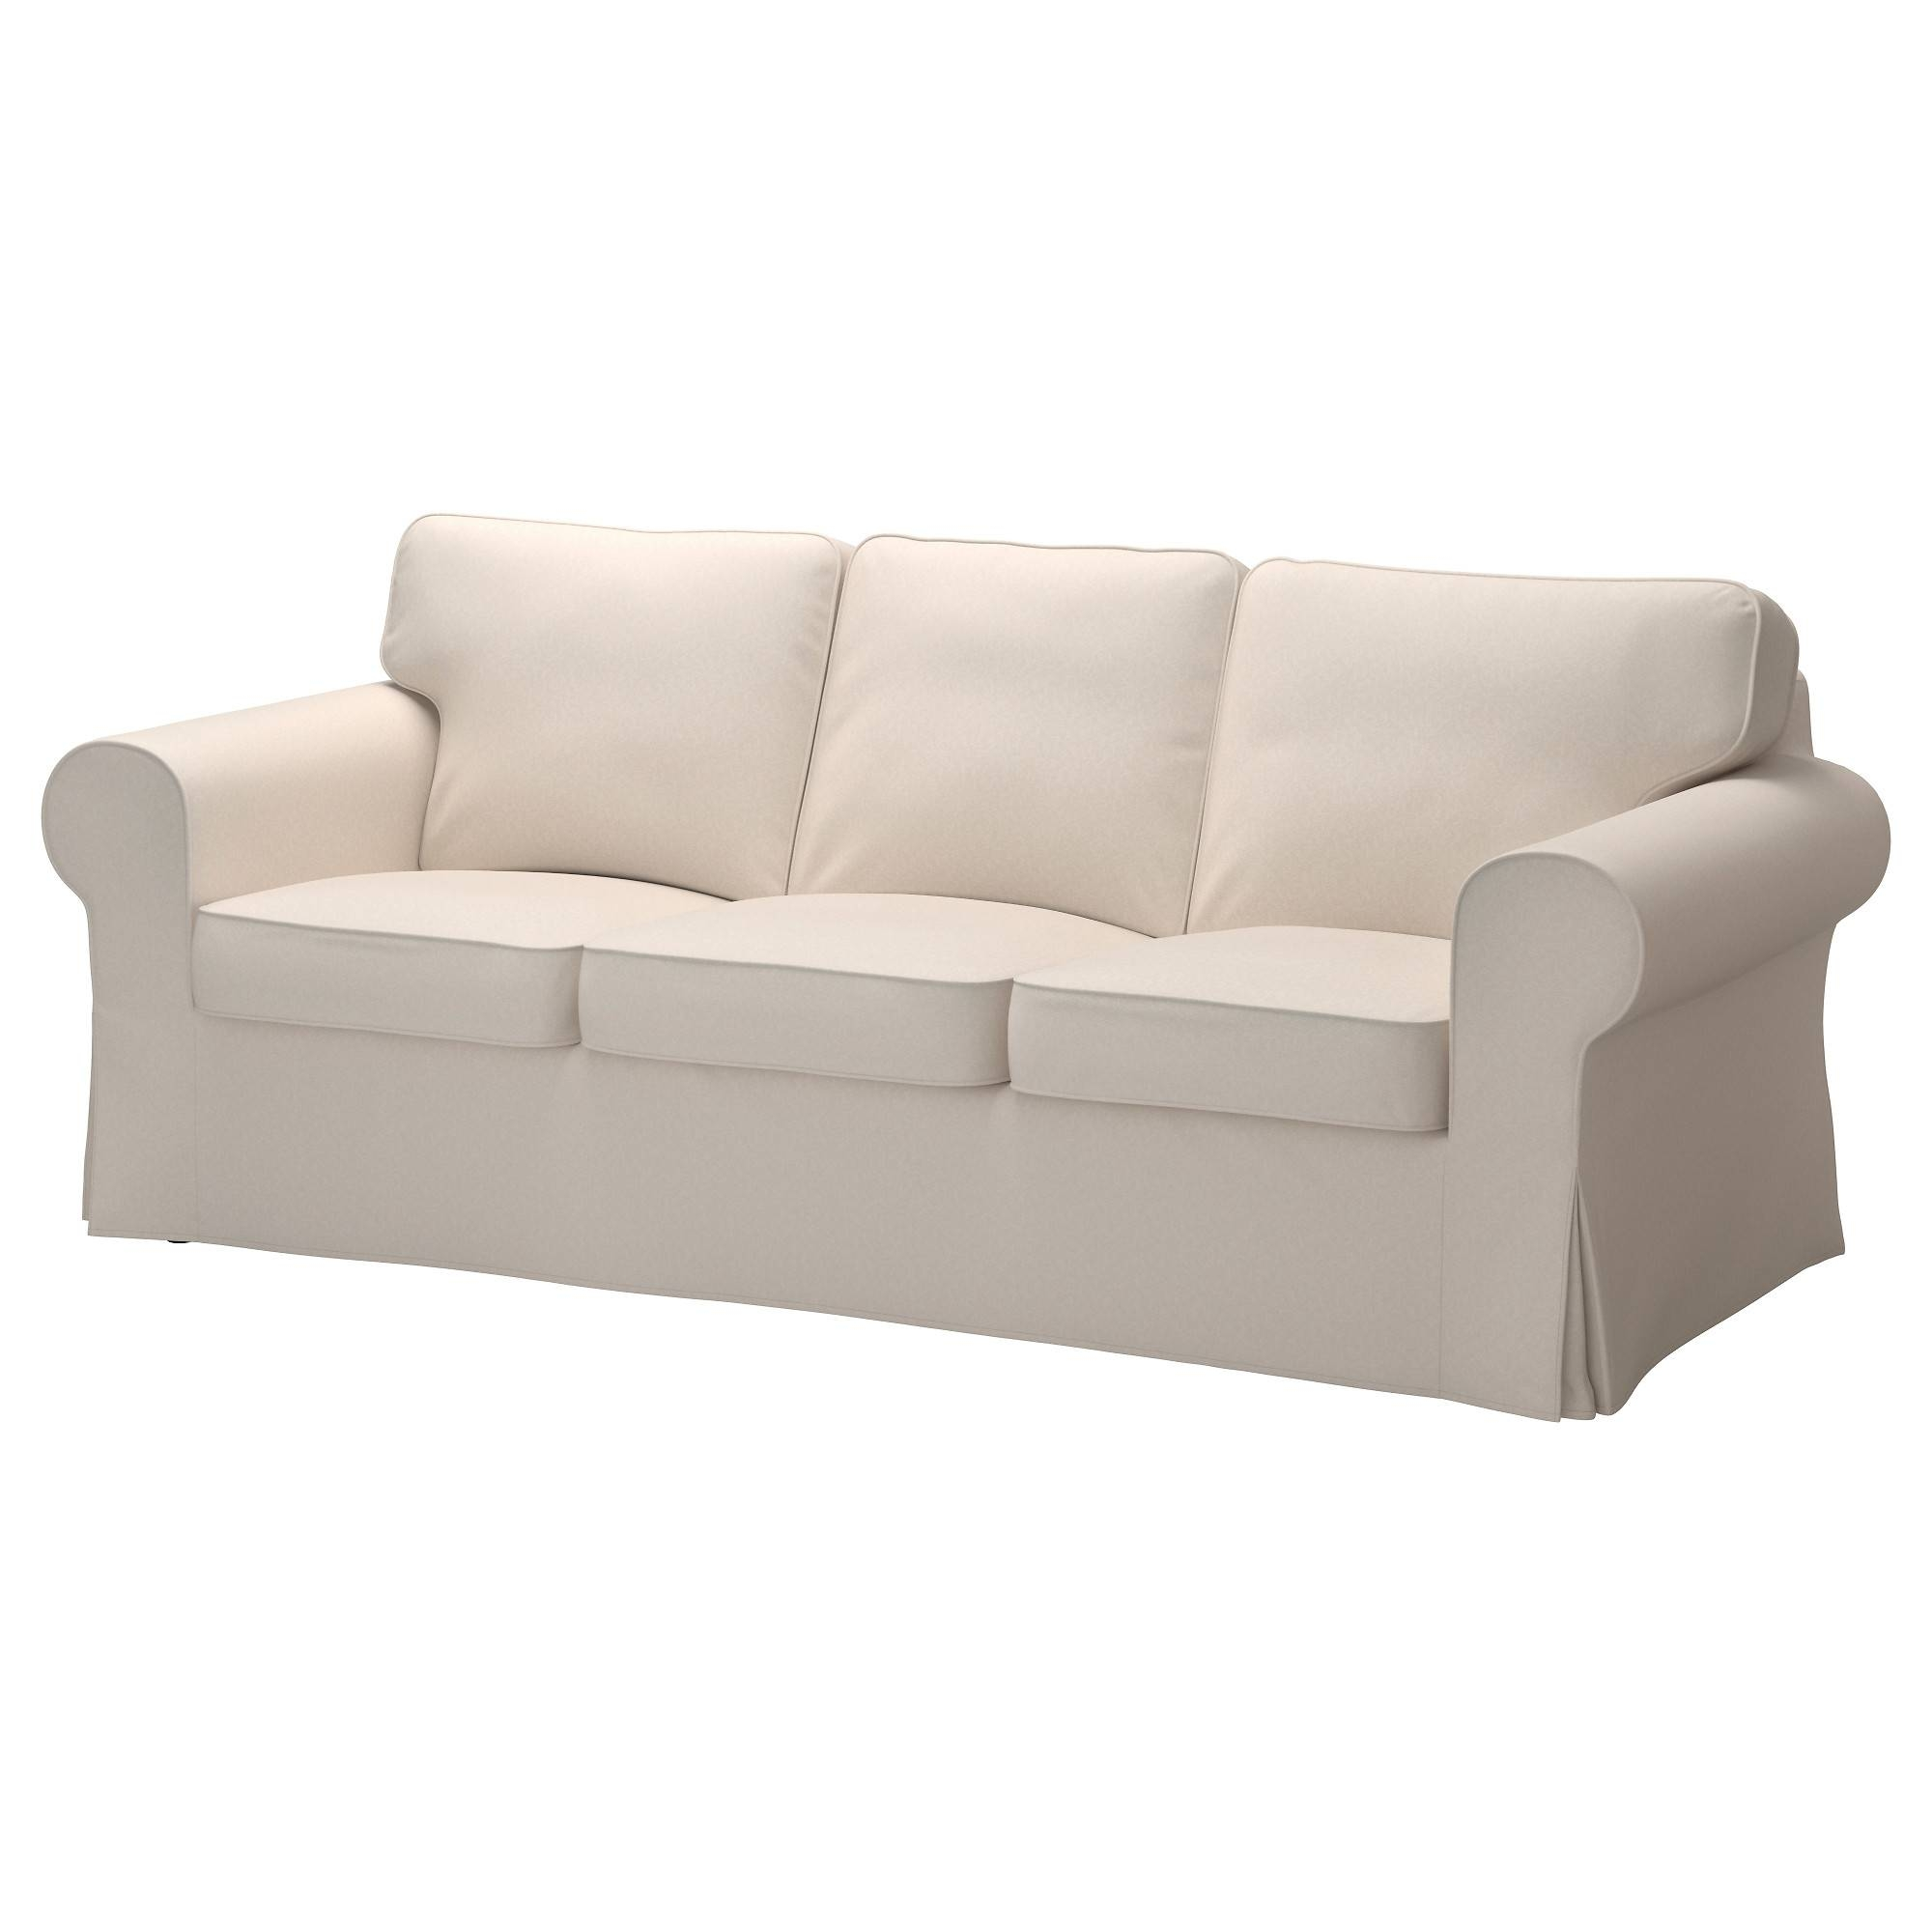 Ektorp Sofa - Lofallet Beige - Ikea intended for 4 Seat Couch (Image 13 of 30)